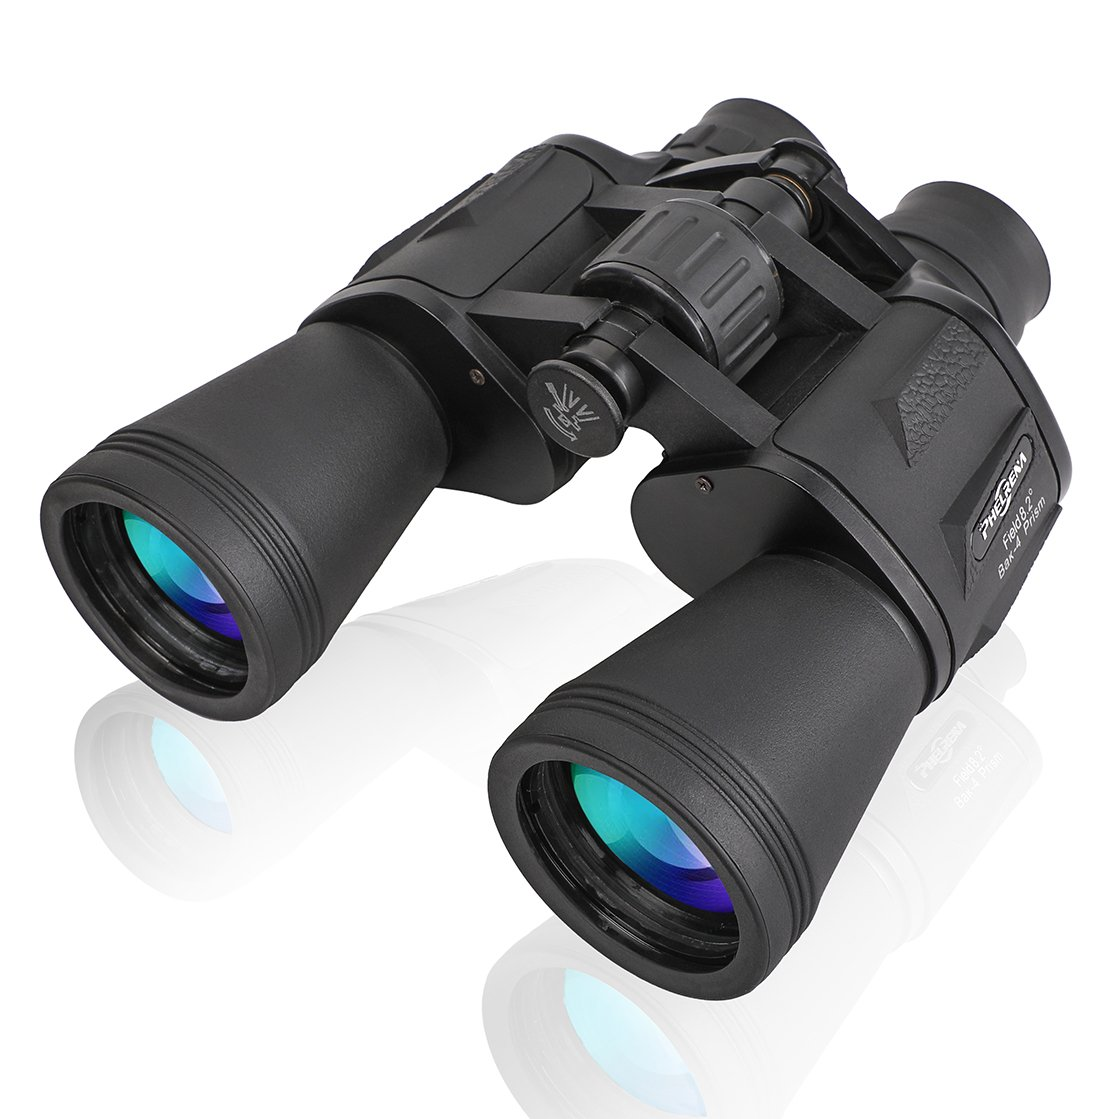 PHELRENA 20x50 Binoculars for Kids Adults,Compact HD Professional Binoculars Telescope Bird Watching Stargazing Hunting Concerts Football Sightseeing Phone Mount Strap Carrying Bag  by PHELRENA